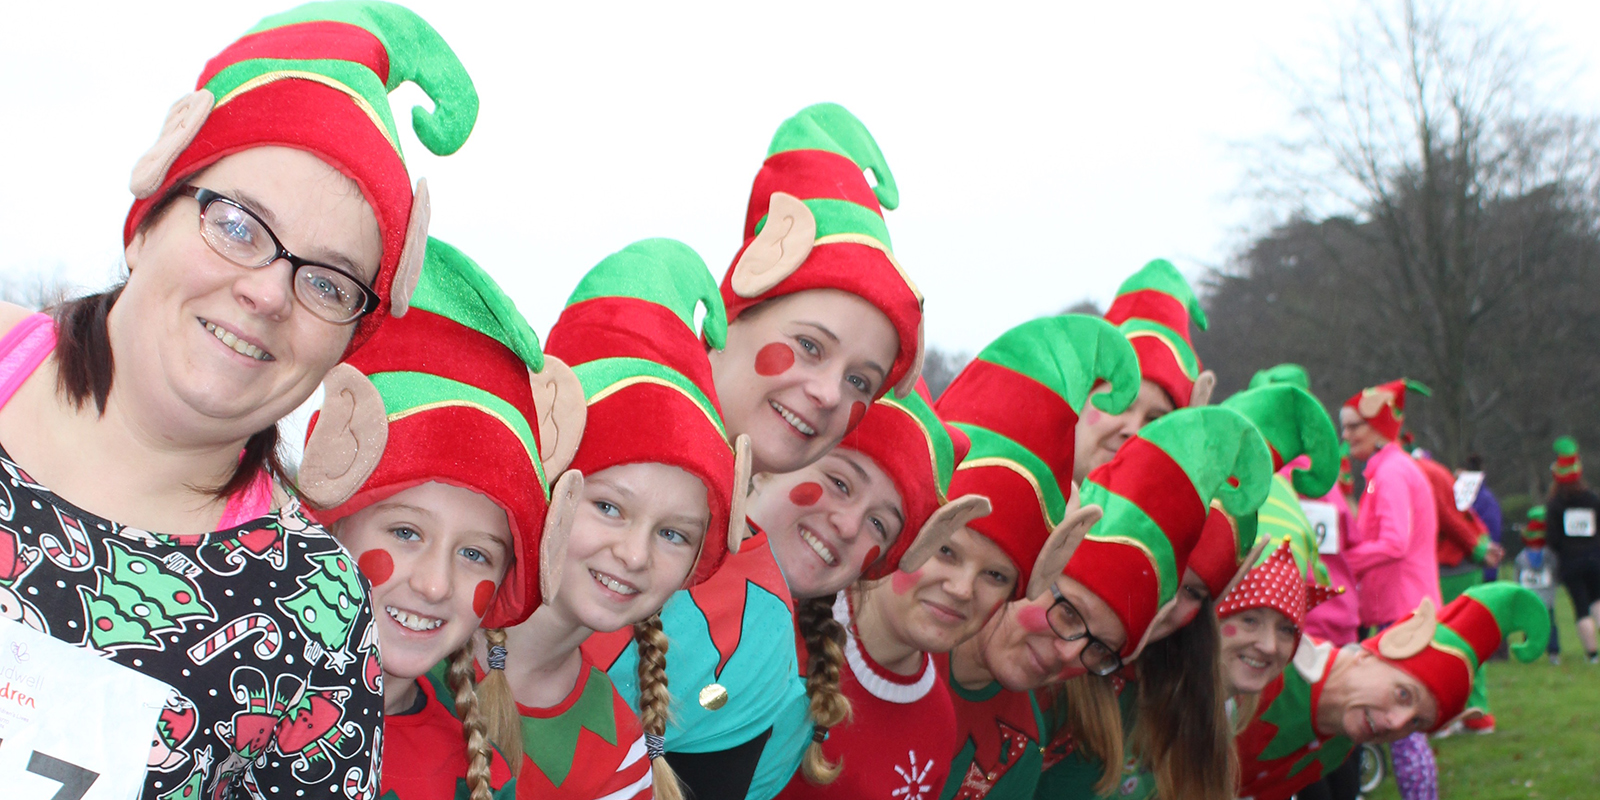 People dressed as elves